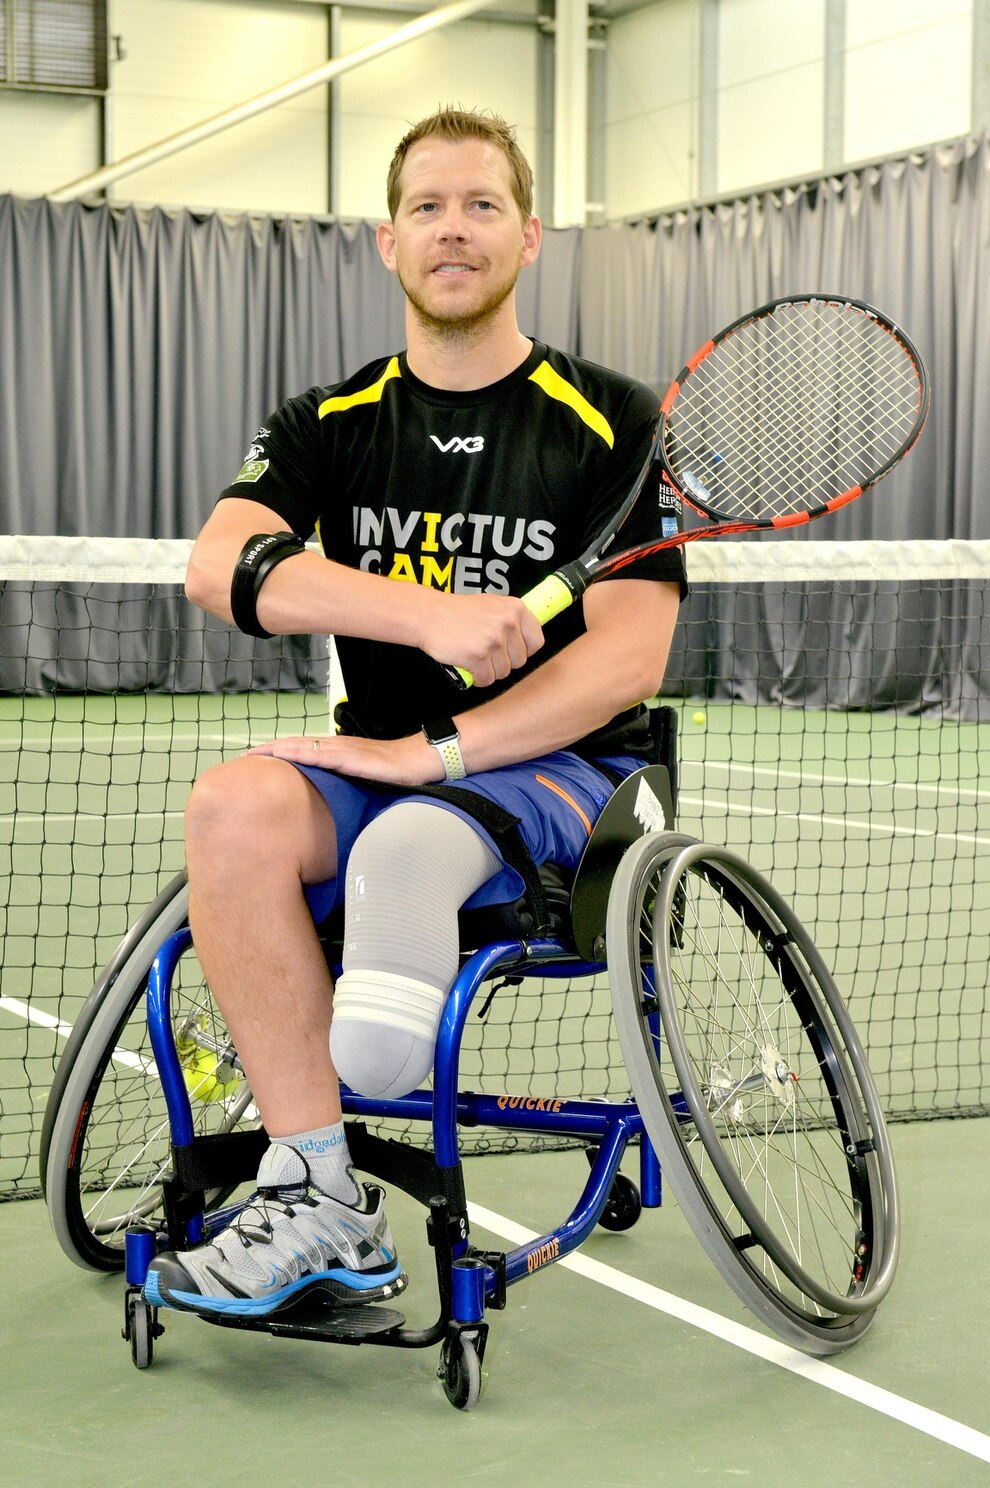 wheelchair drake yellow lounge chair shrewsbury sergeant kevin excited to represent country at in training for the invictus games